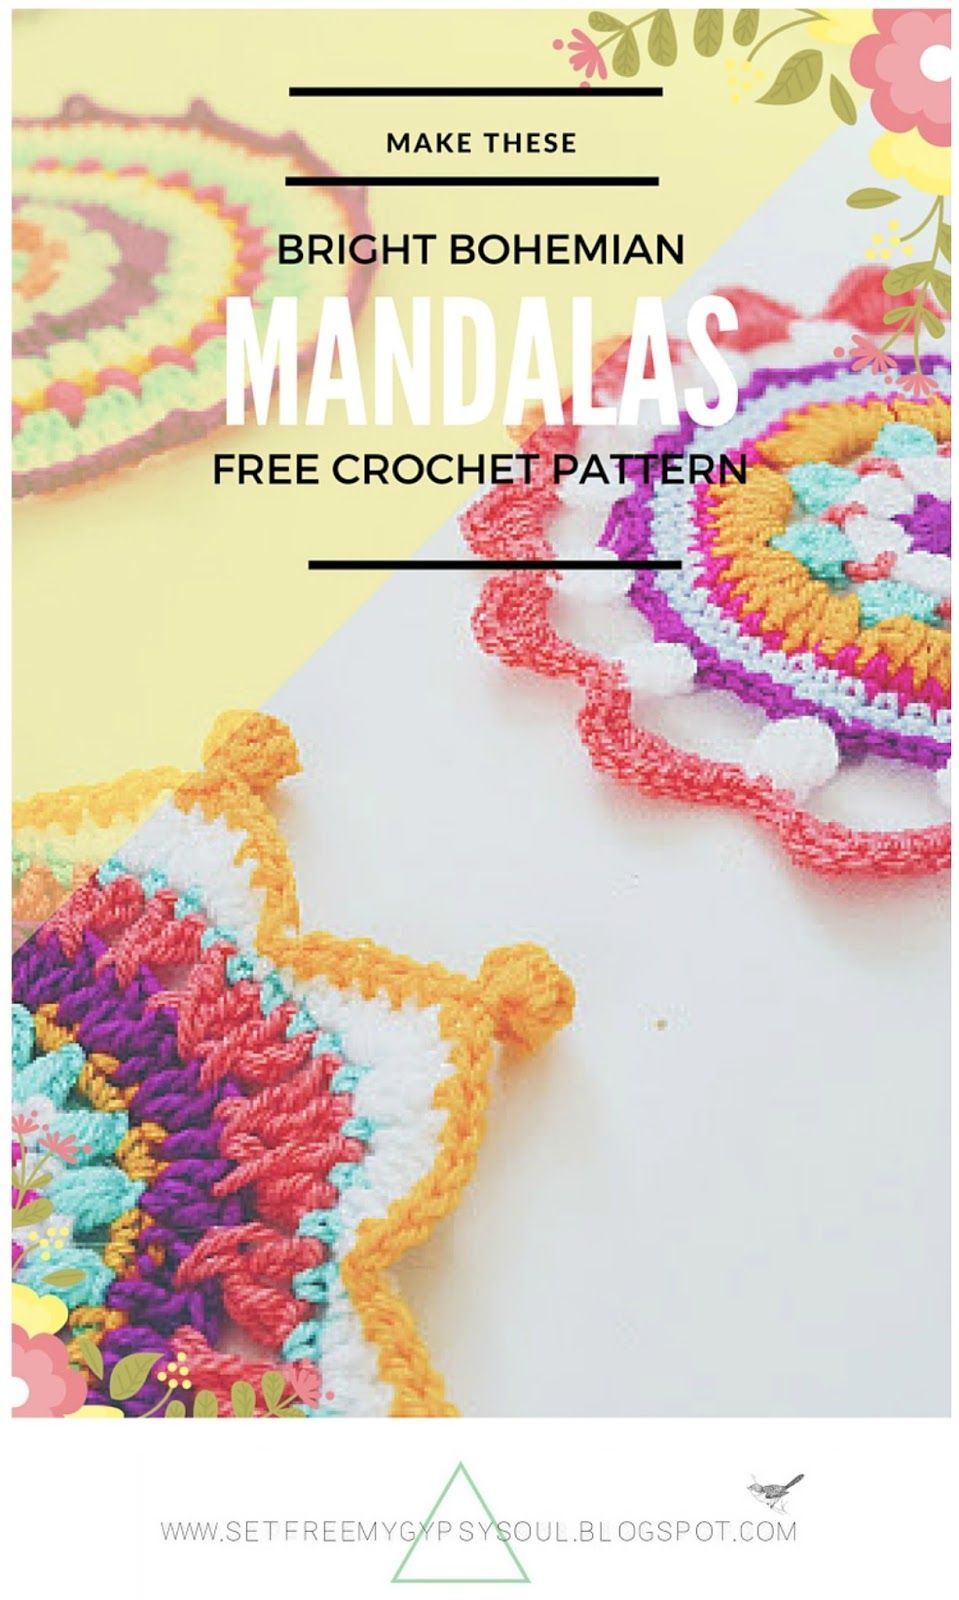 3 Bright Bohemian Mandalas to Crochet | Mandalas, Tejido y Ganchillo